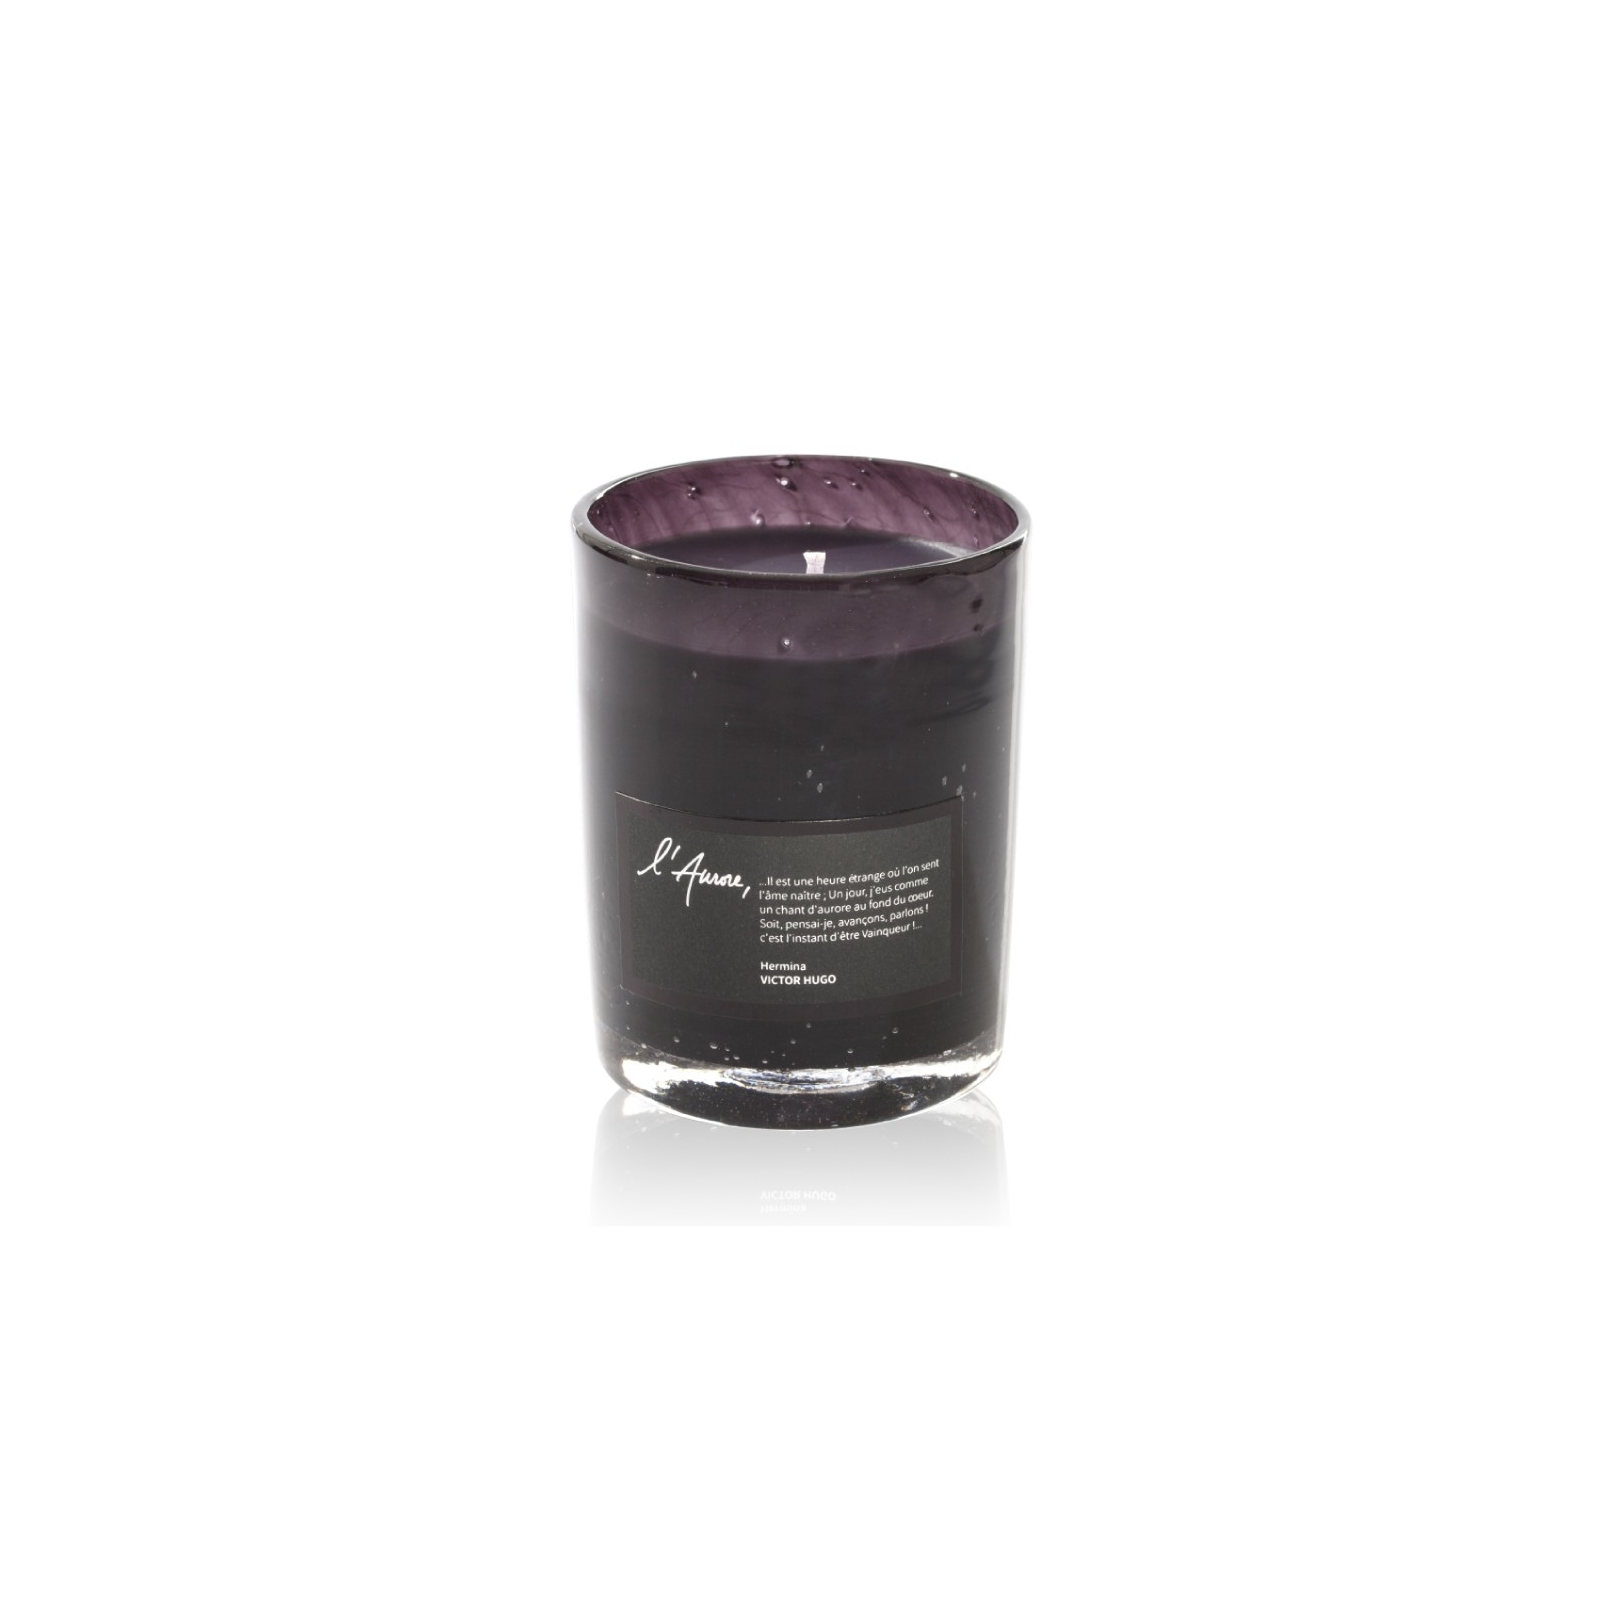 Scented candle HERMINA (violet, citrus, green tea)